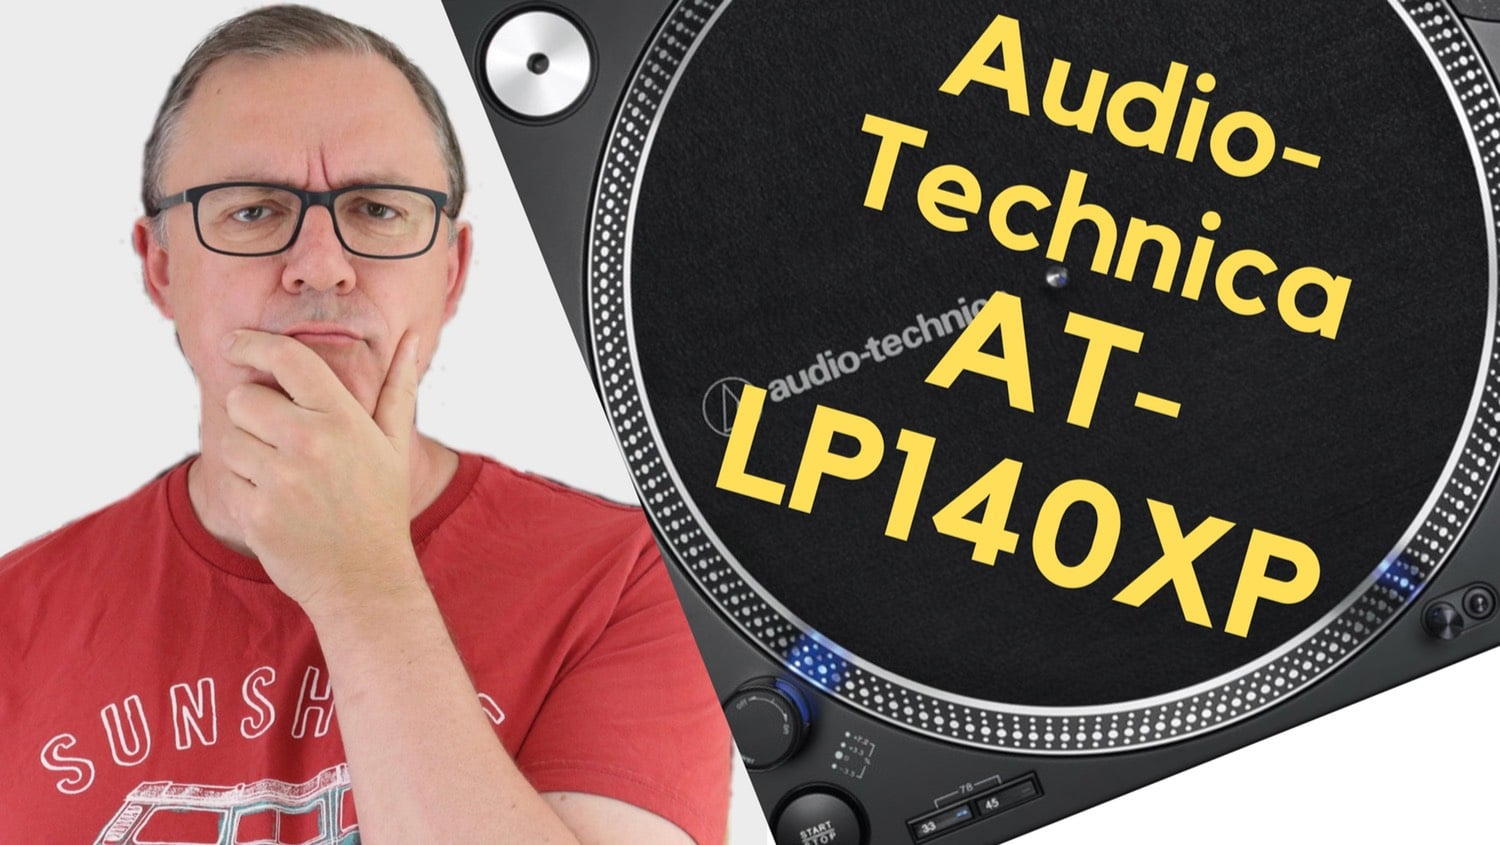 AT-LP140XP From Audio-Technica - The Audiophile Man